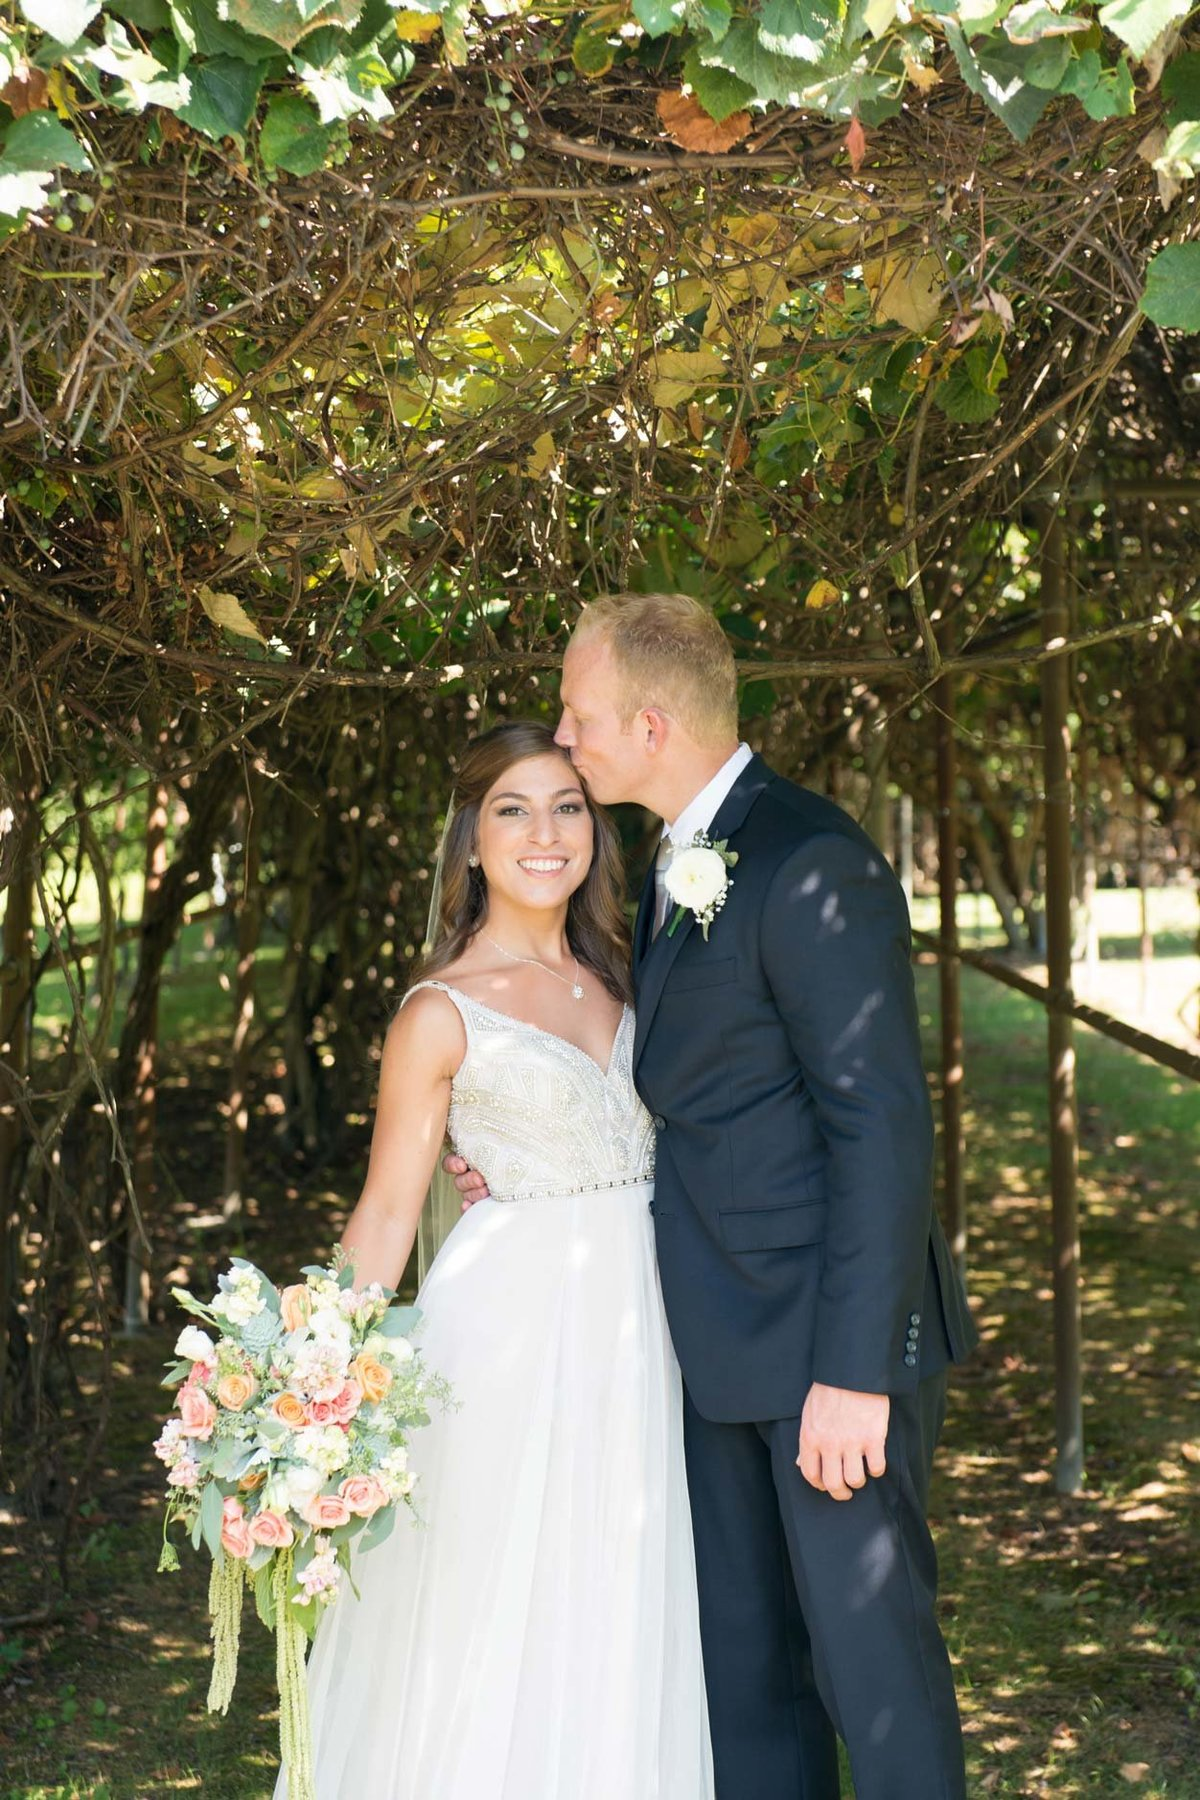 Bride and groom outside in trail under flowers with groom kissing bride at Flowerfield